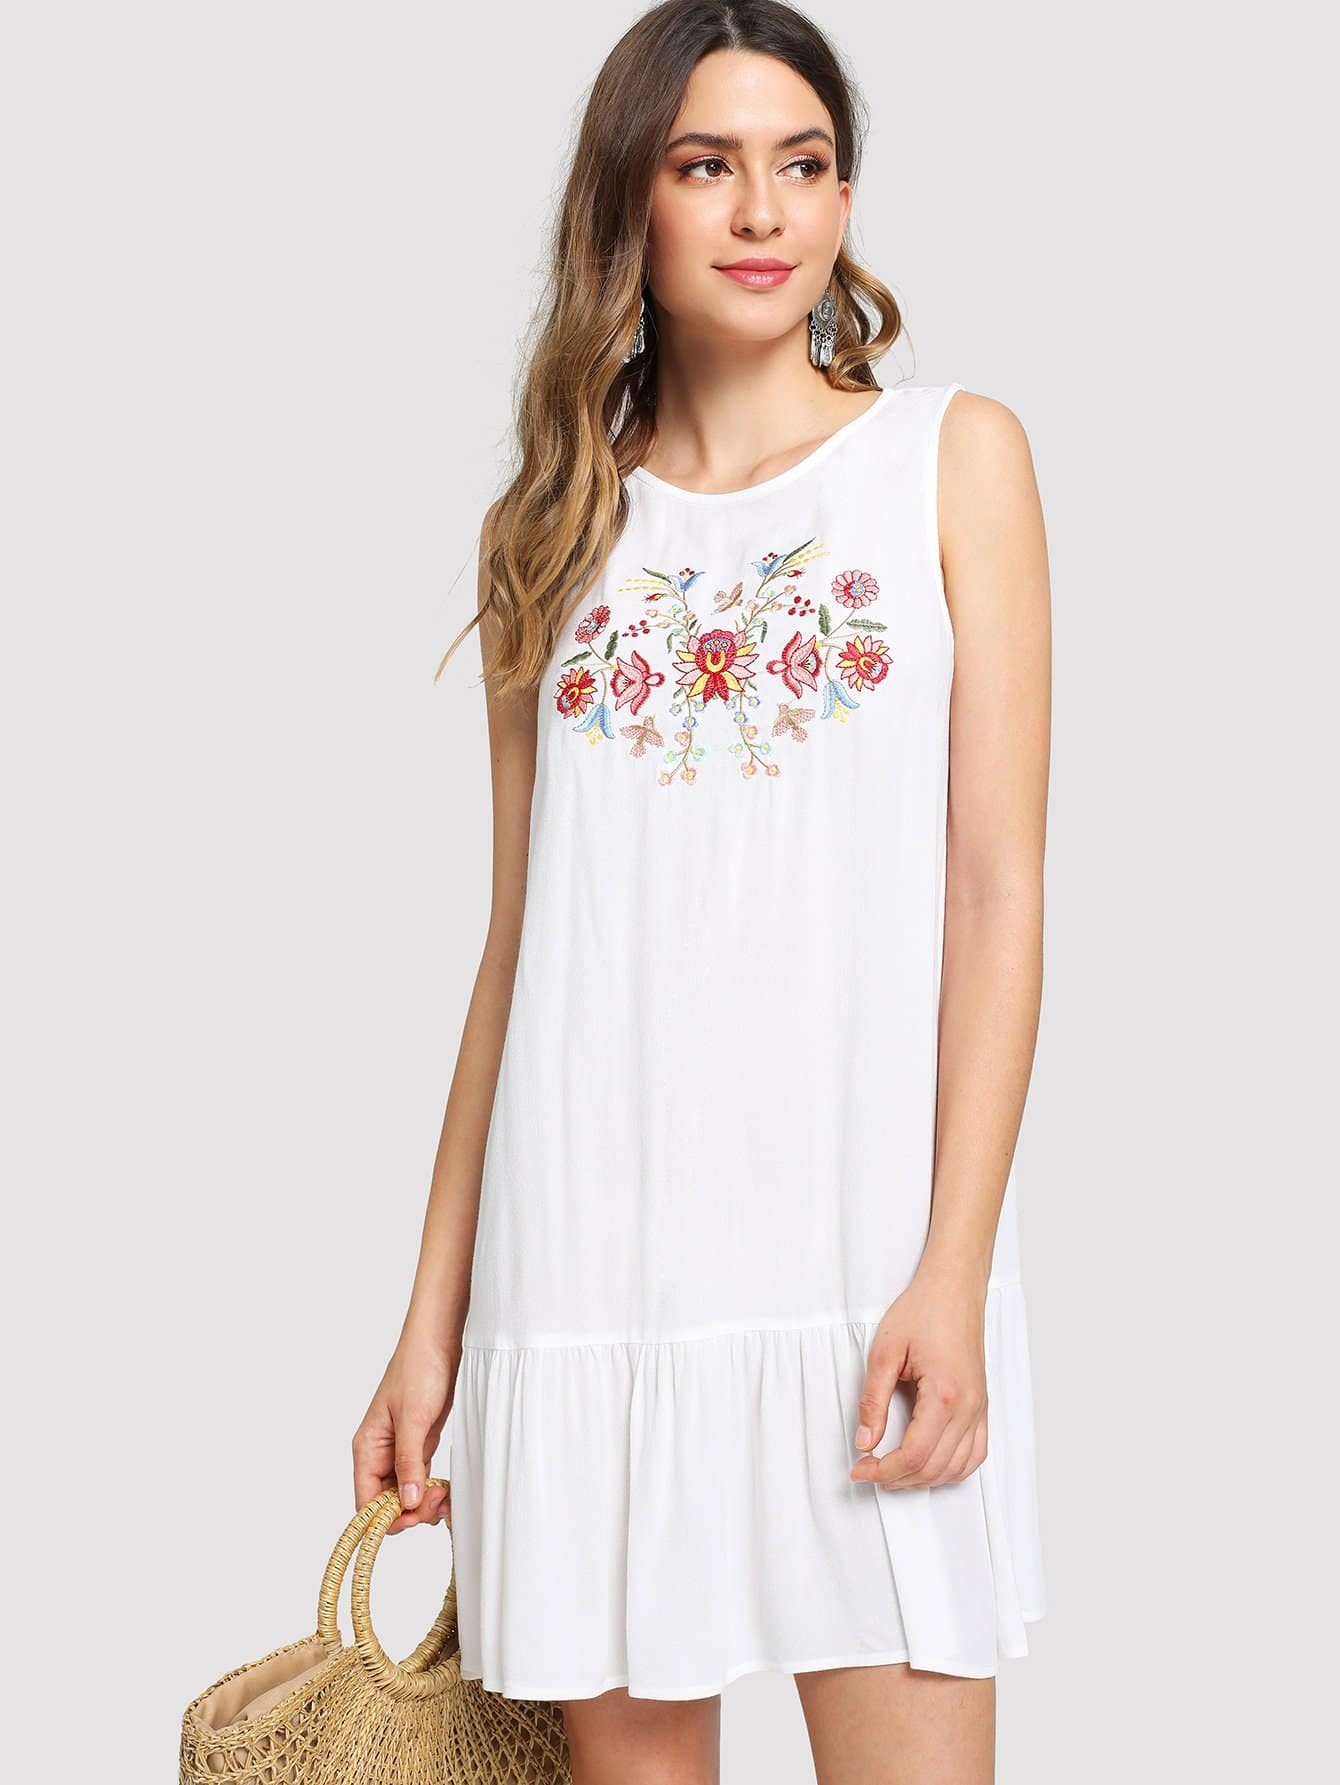 Flower Embroidered Keyhole Back Ruffle Hem Dress scallop ruffle hem buttoned keyhole back shell top